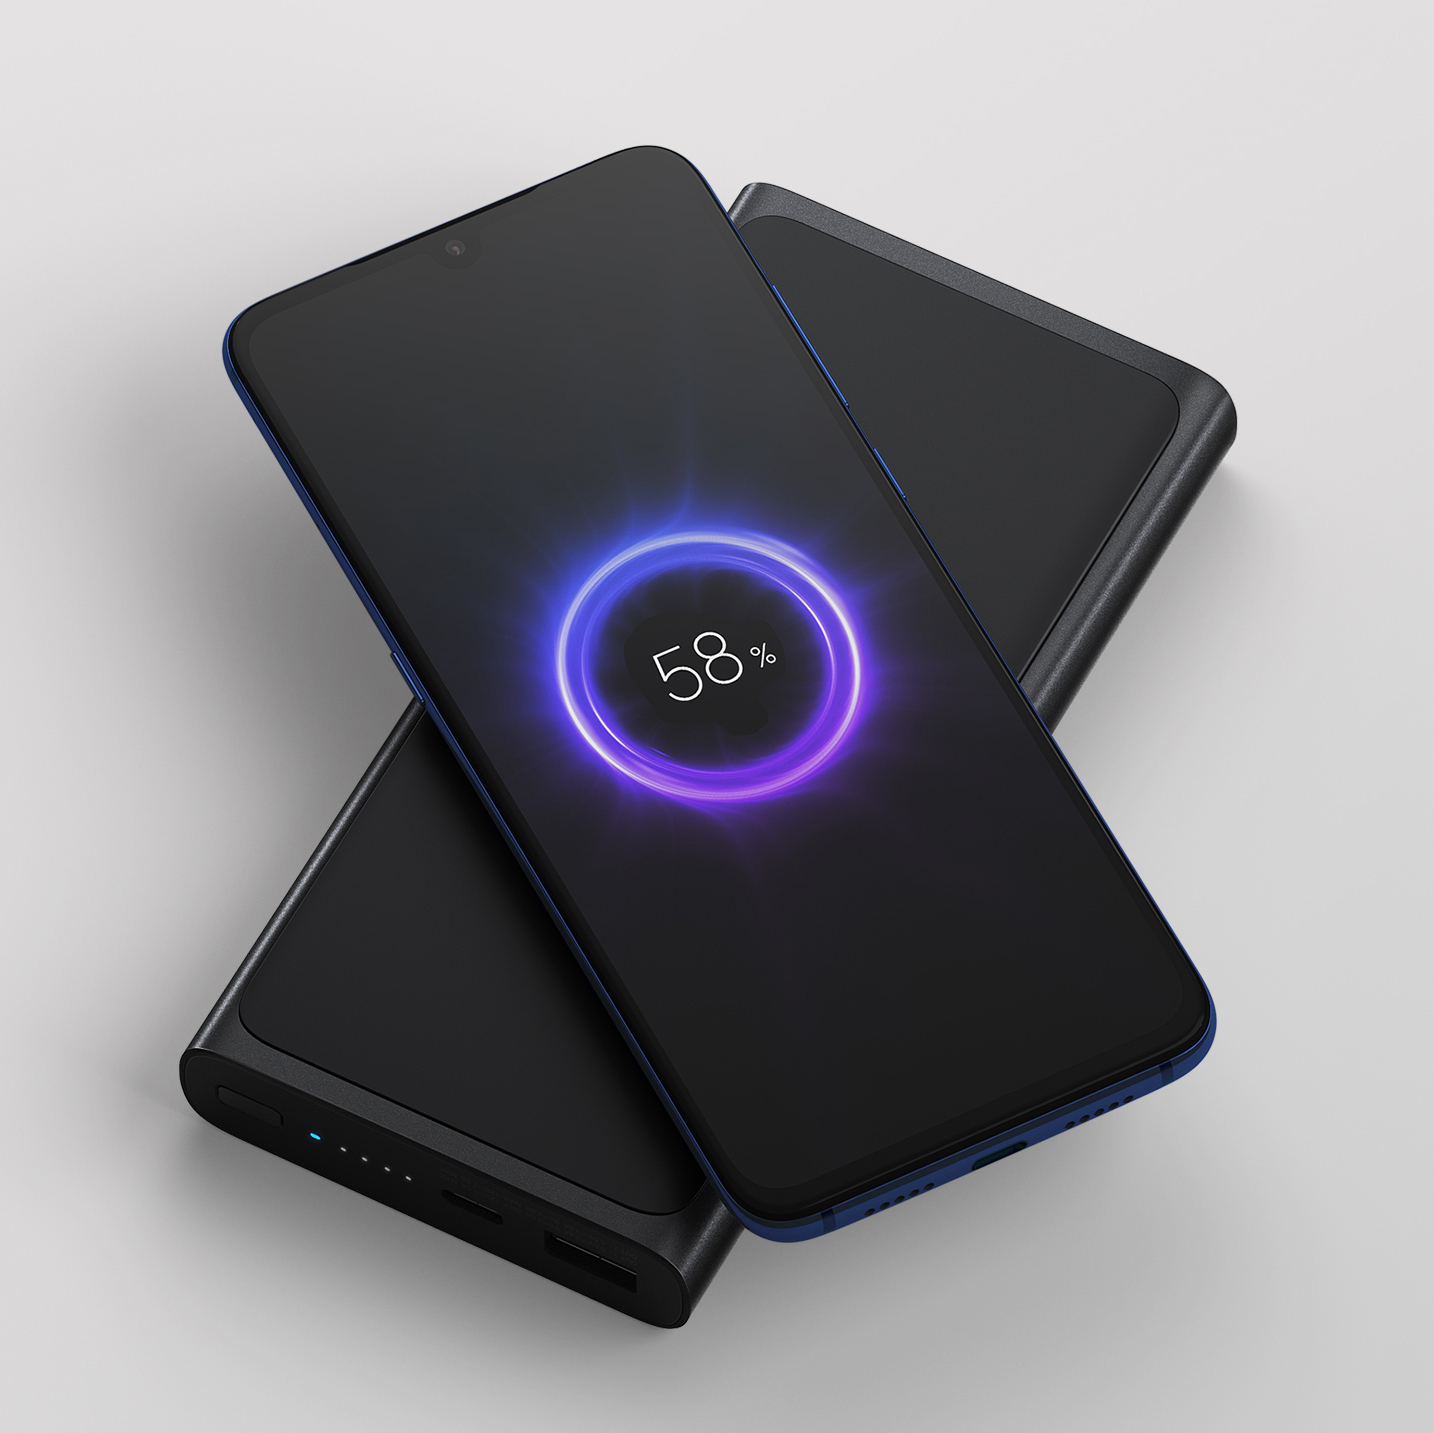 Details about Xiaomi Wireless Power Bank 10000mAh Qi Fast Charger External Battery for iPhone